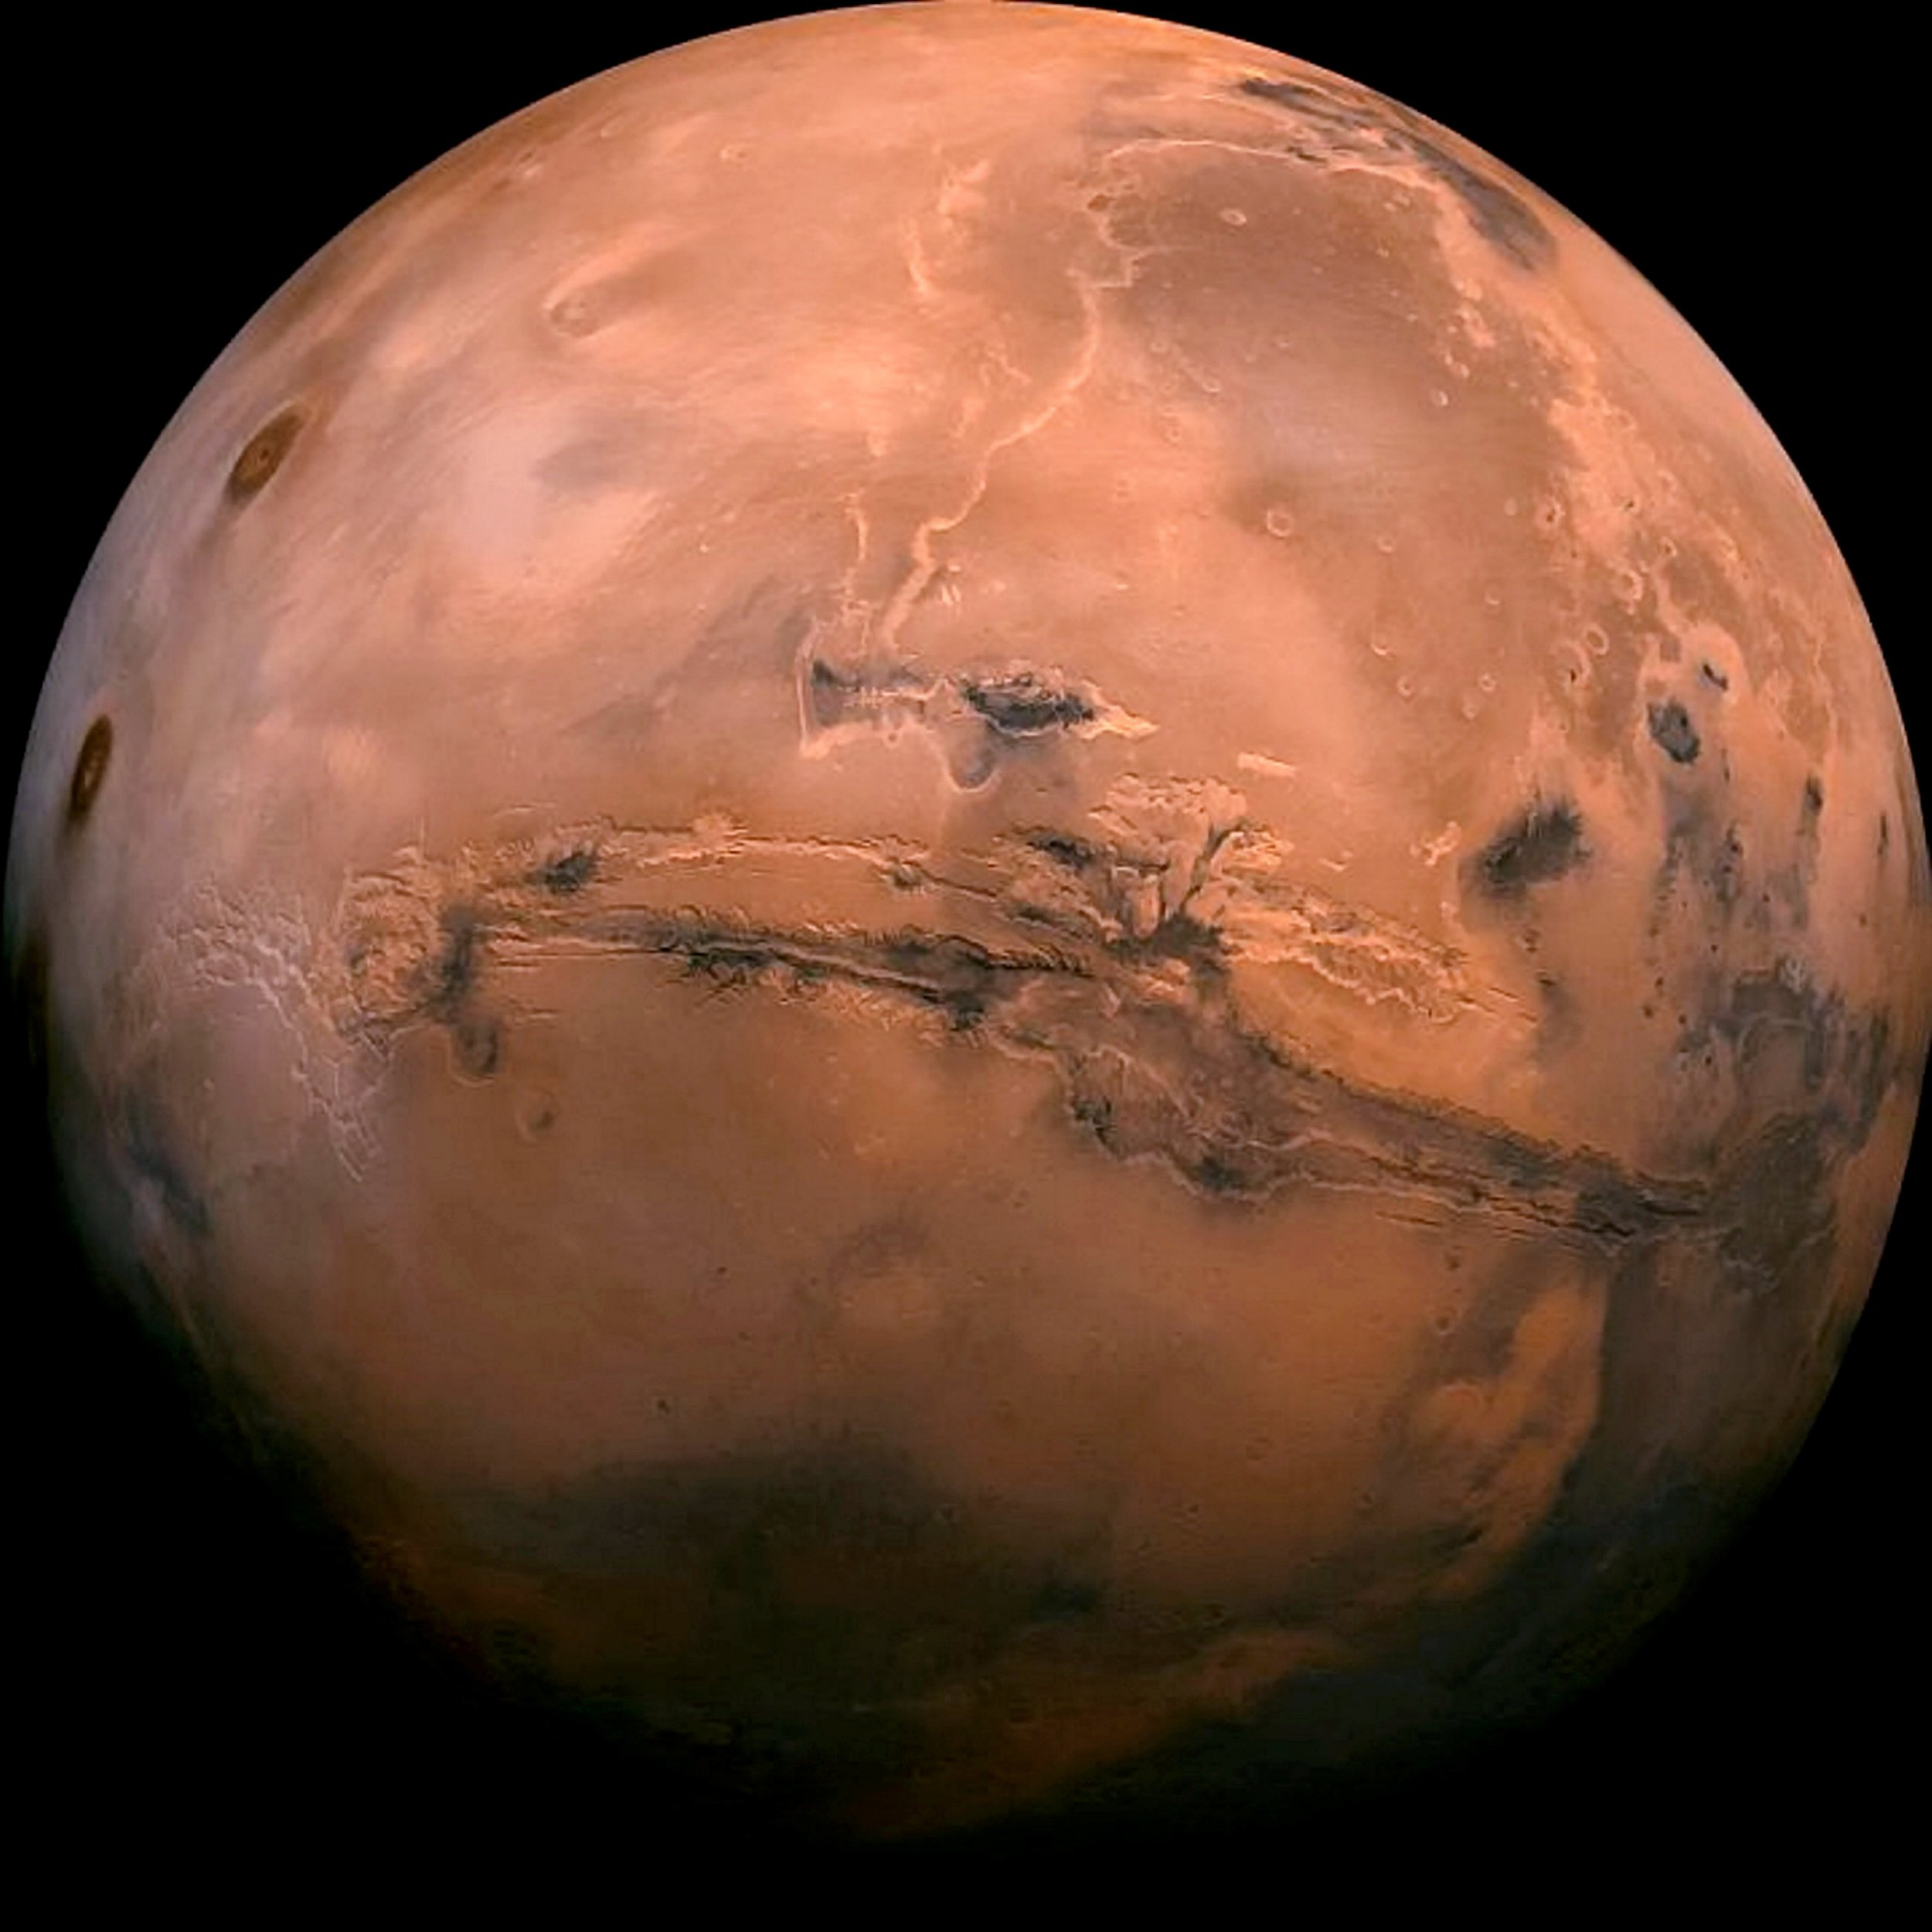 Nasa is hoping to send astronauts to Mars within 15 years